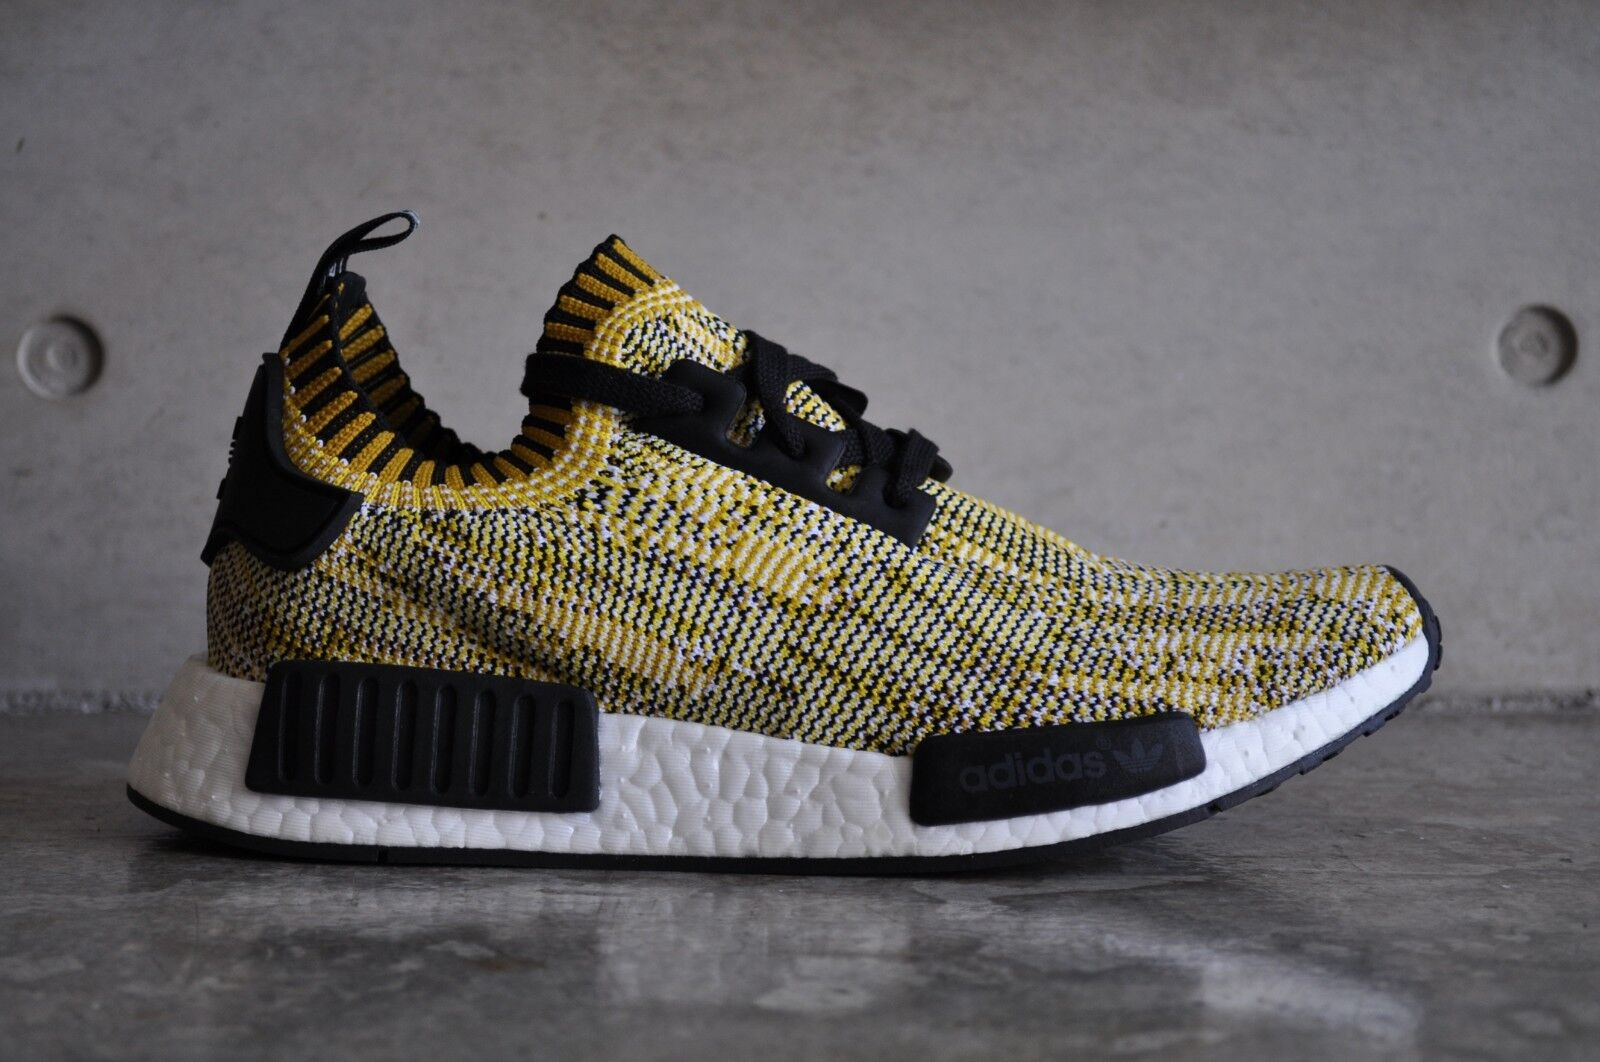 reputable site a72cf 12744 Details about Adidas NMD R1 Primeknit Yellow Black 7 UK 40 2/3 EUR 7.5 US